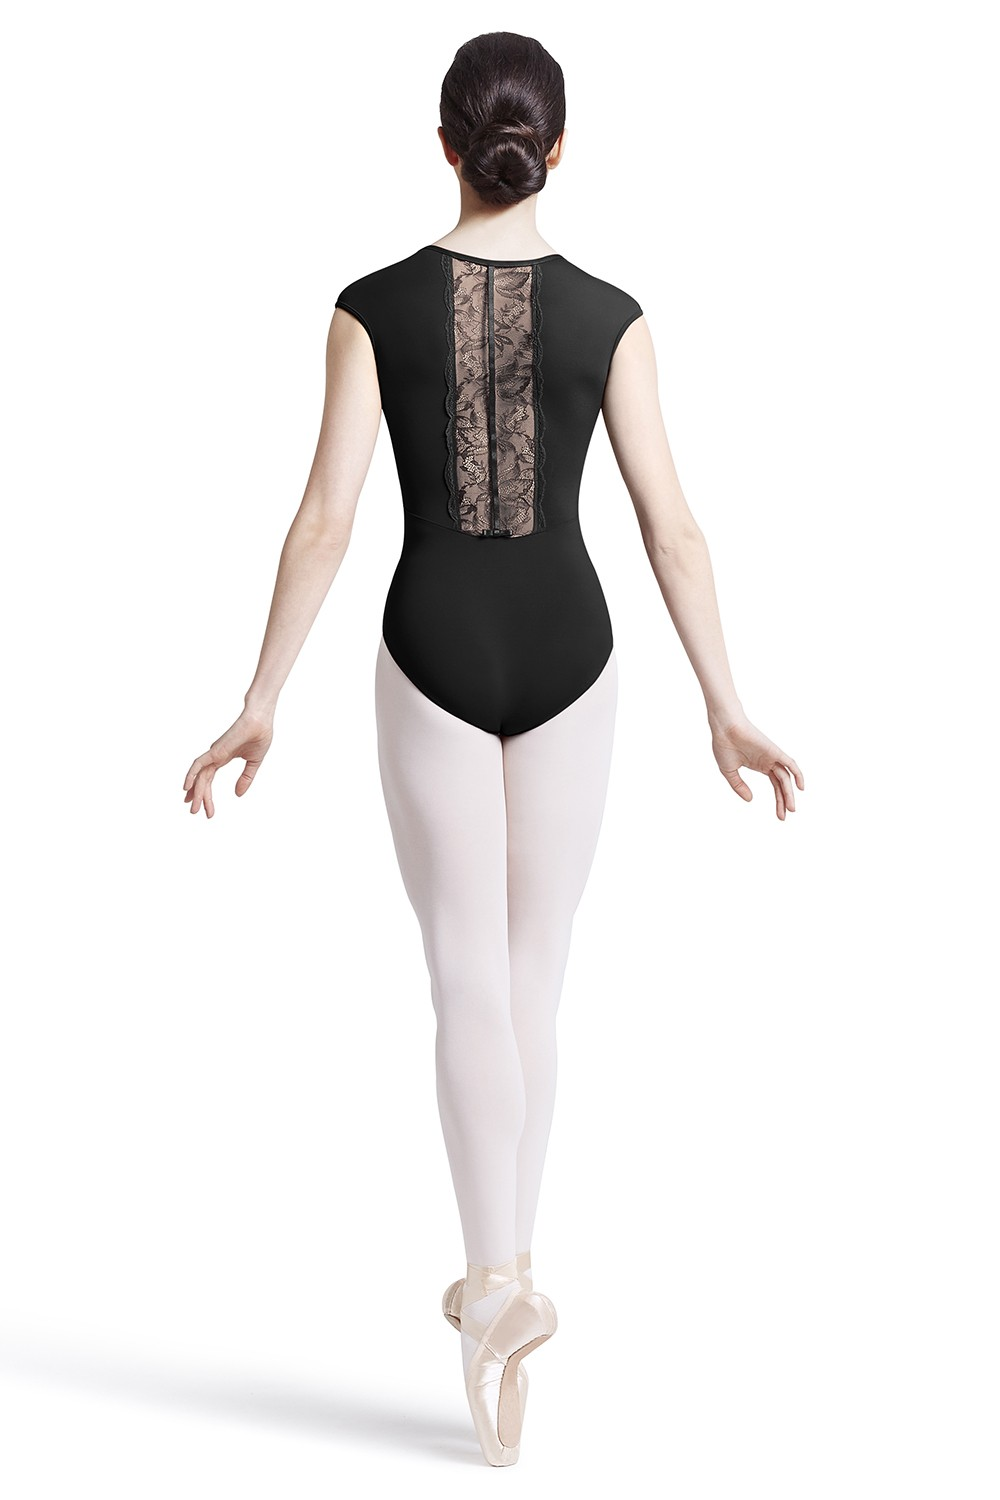 Scallop Lace Back Sleeve Leo Children's Dance Leotards